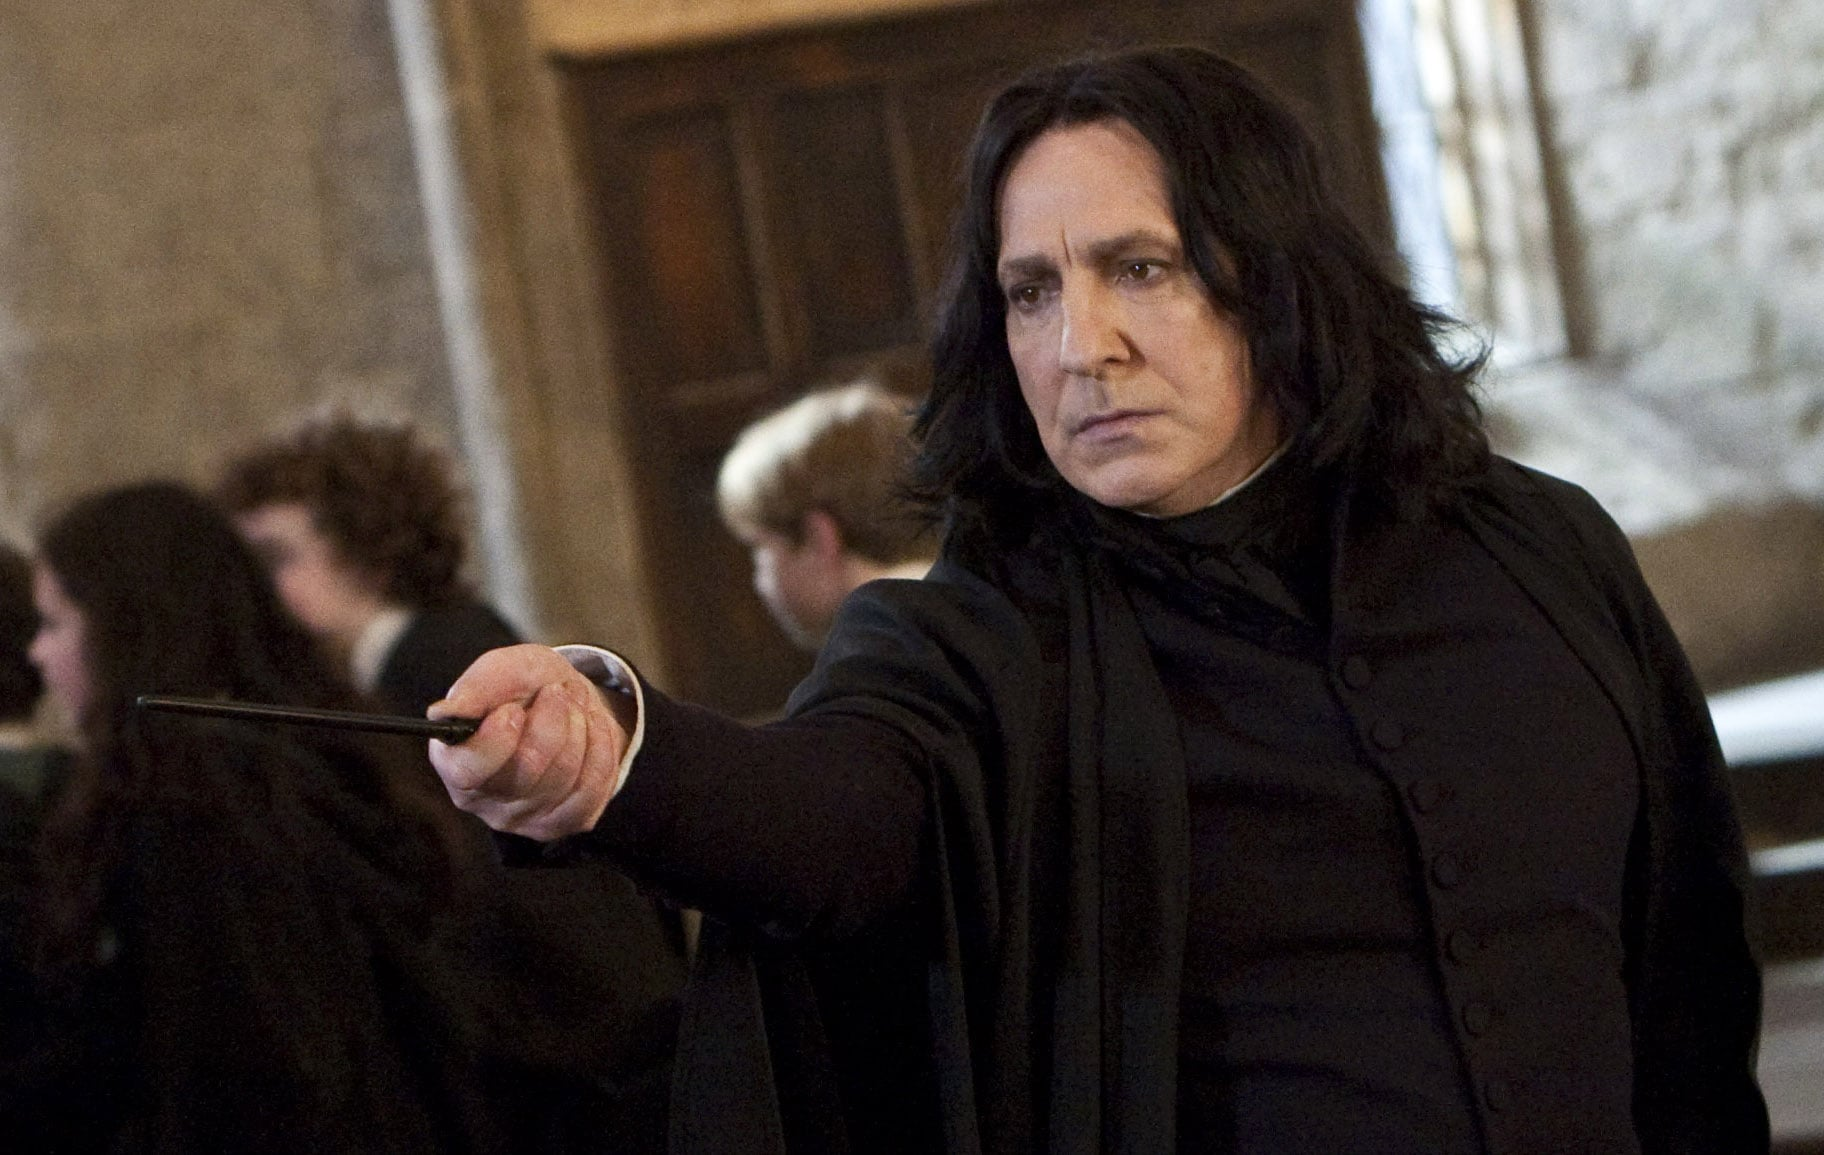 in Harry Potter and the Deathly Hallows: Part 2